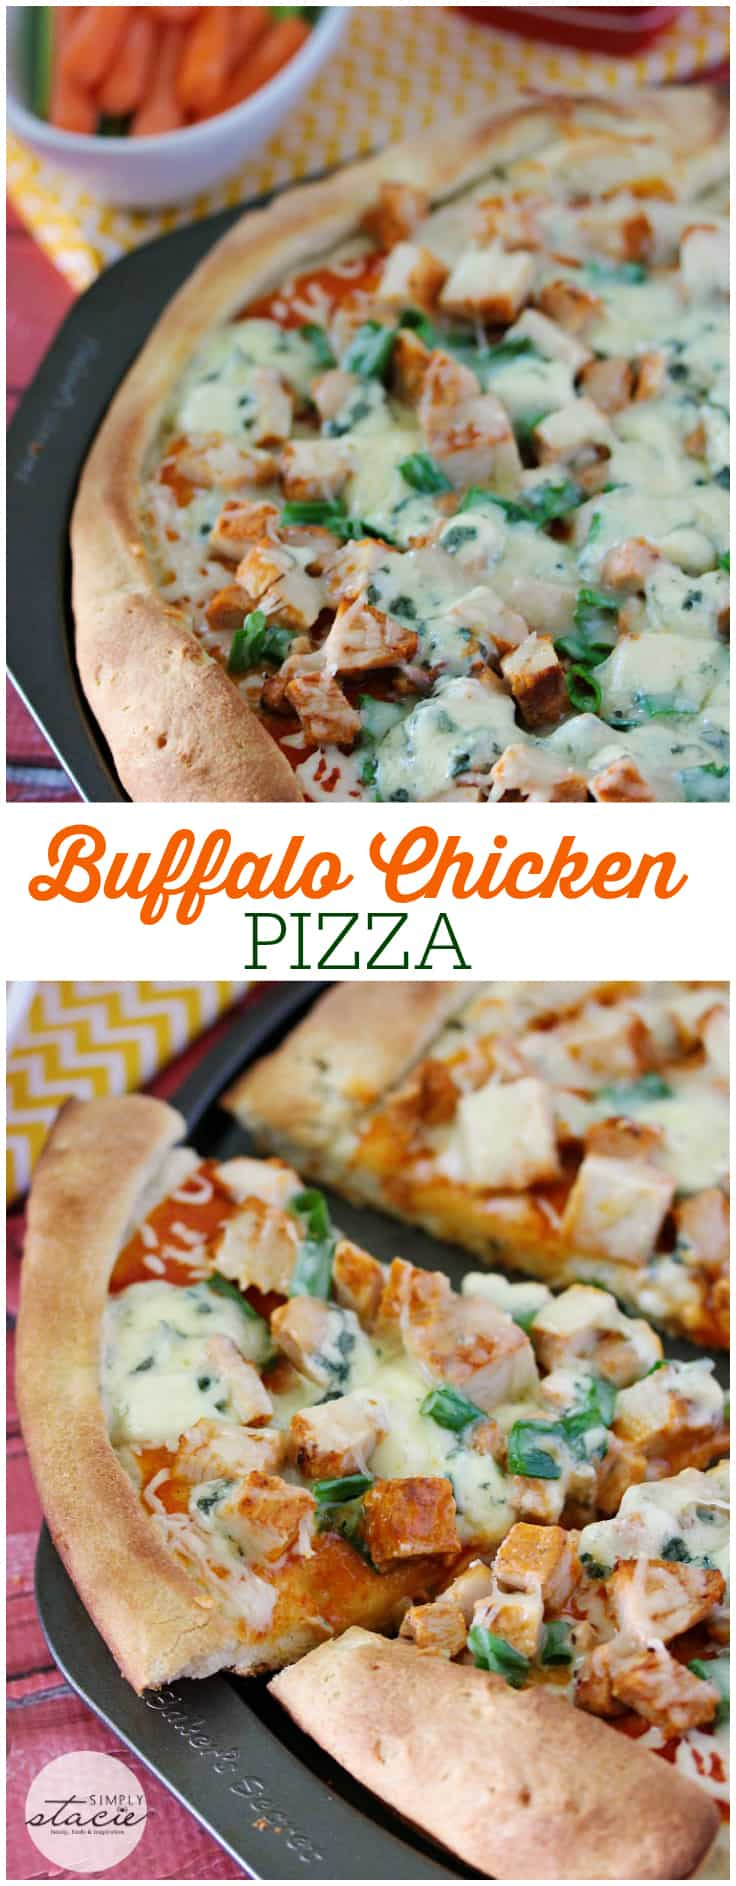 Buffalo Chicken Pizza - All the buffalo flavours we love, but on a pizza! This Buffalo Chicken Pizza recipe is a hit.